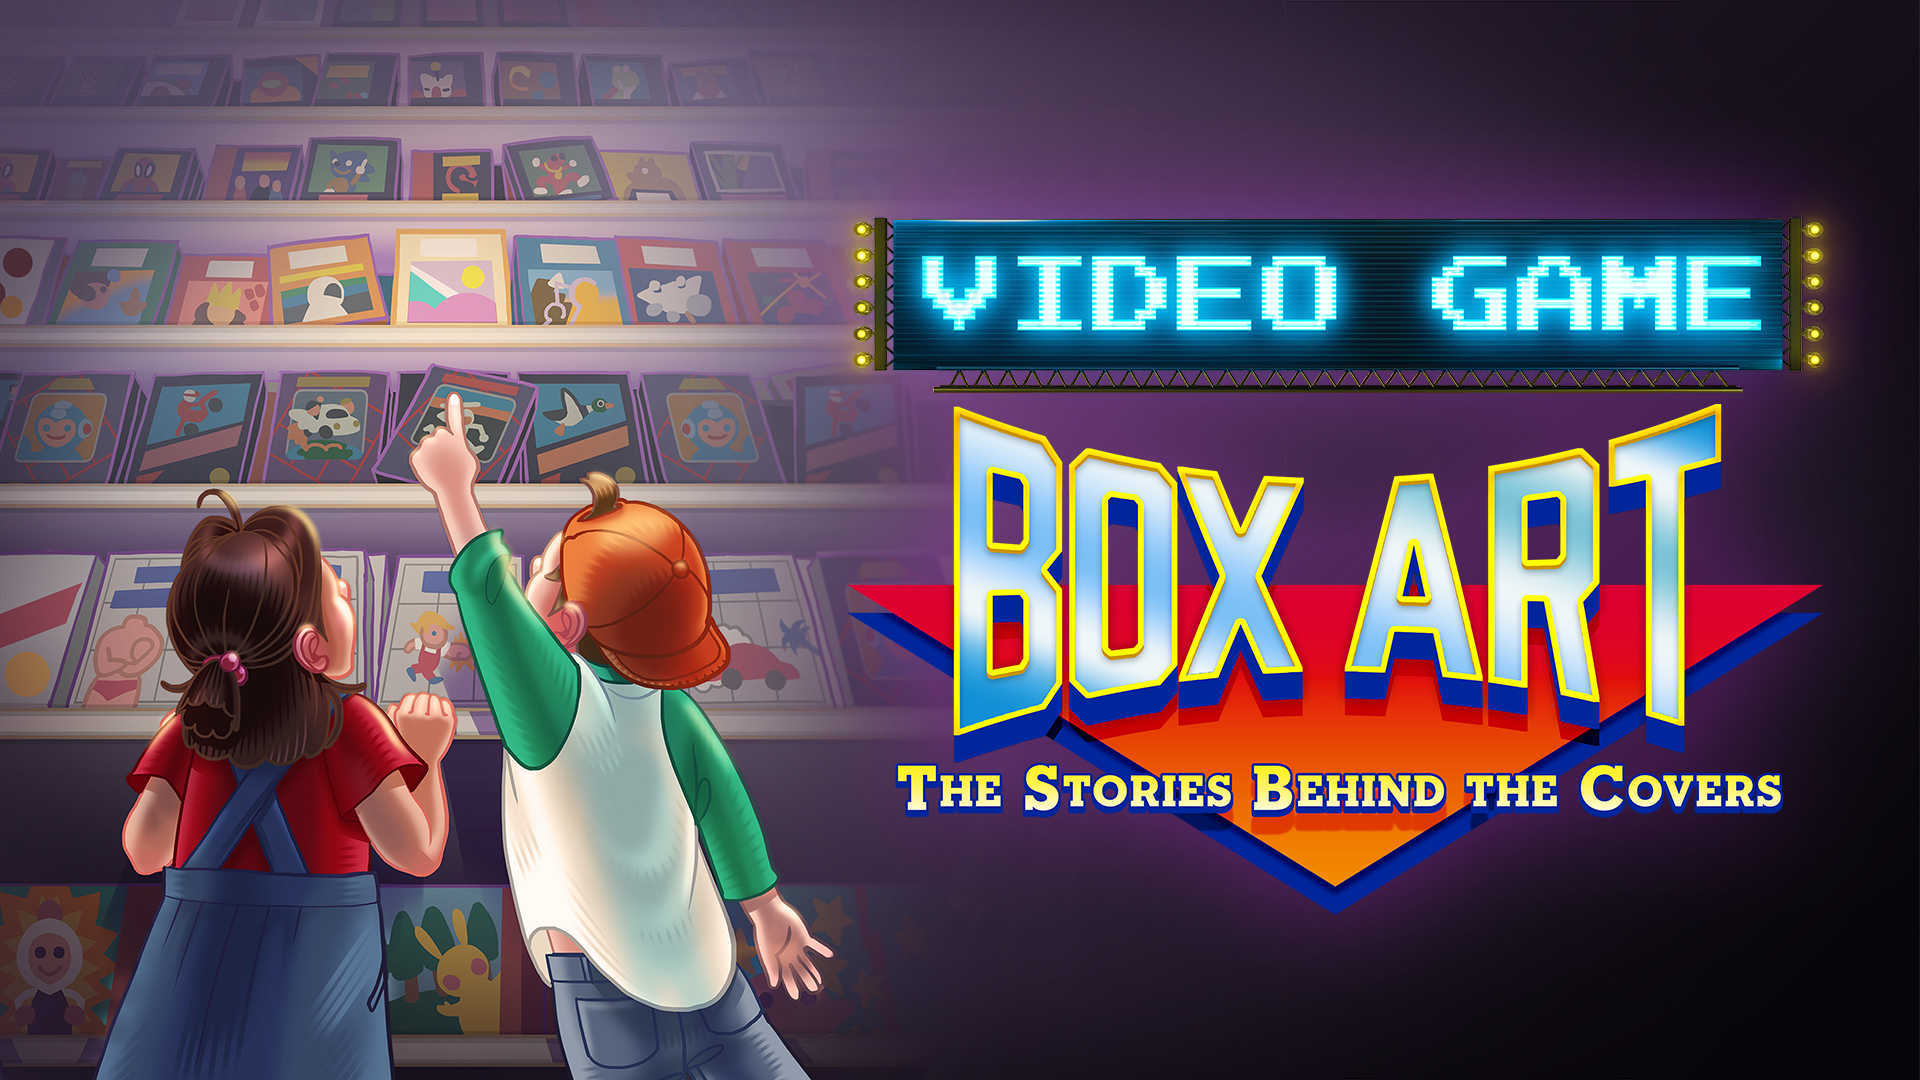 Video Game Box Art: The Stories Behind the Covers